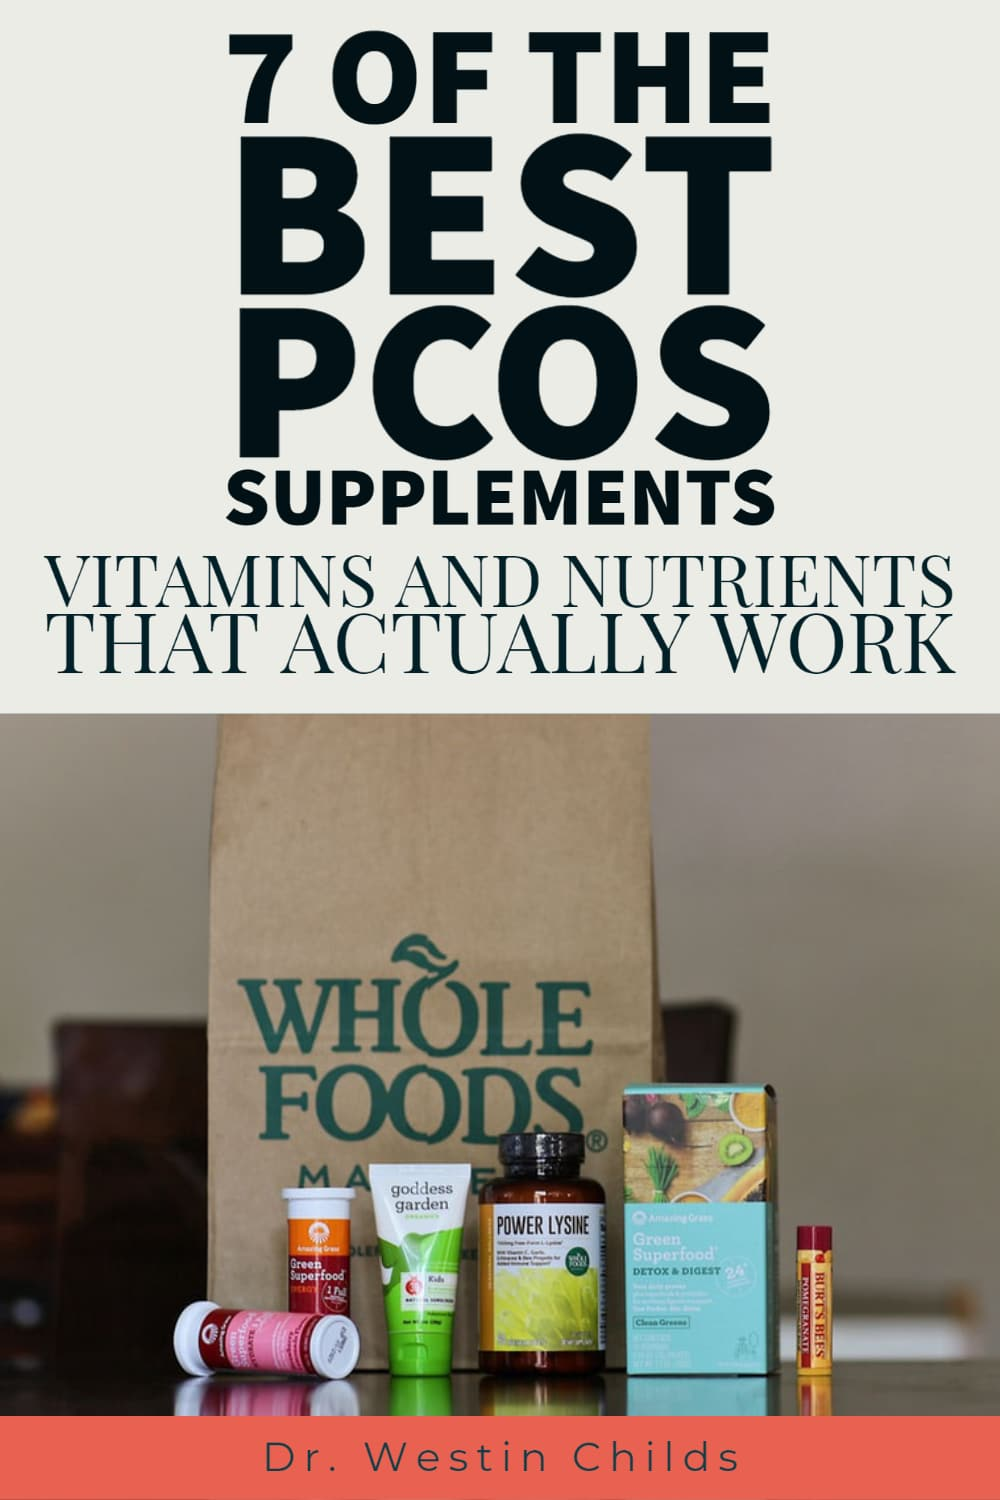 7 of the best PCOS supplements on the market